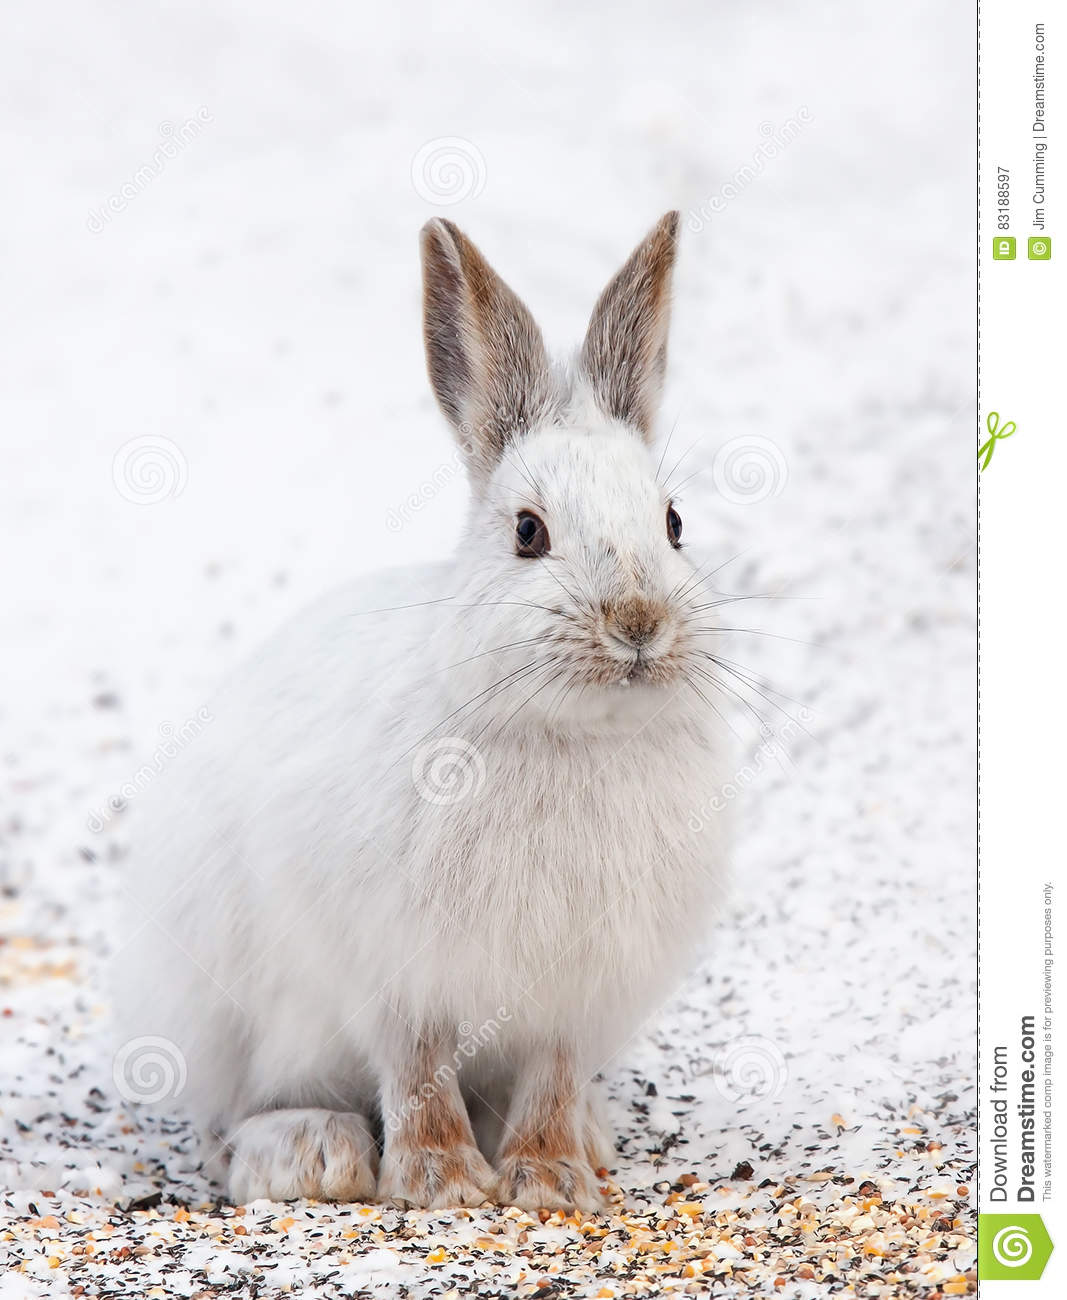 Snowshoe hare or Varying hare (Lepus americanus) closeup in winter in Canada